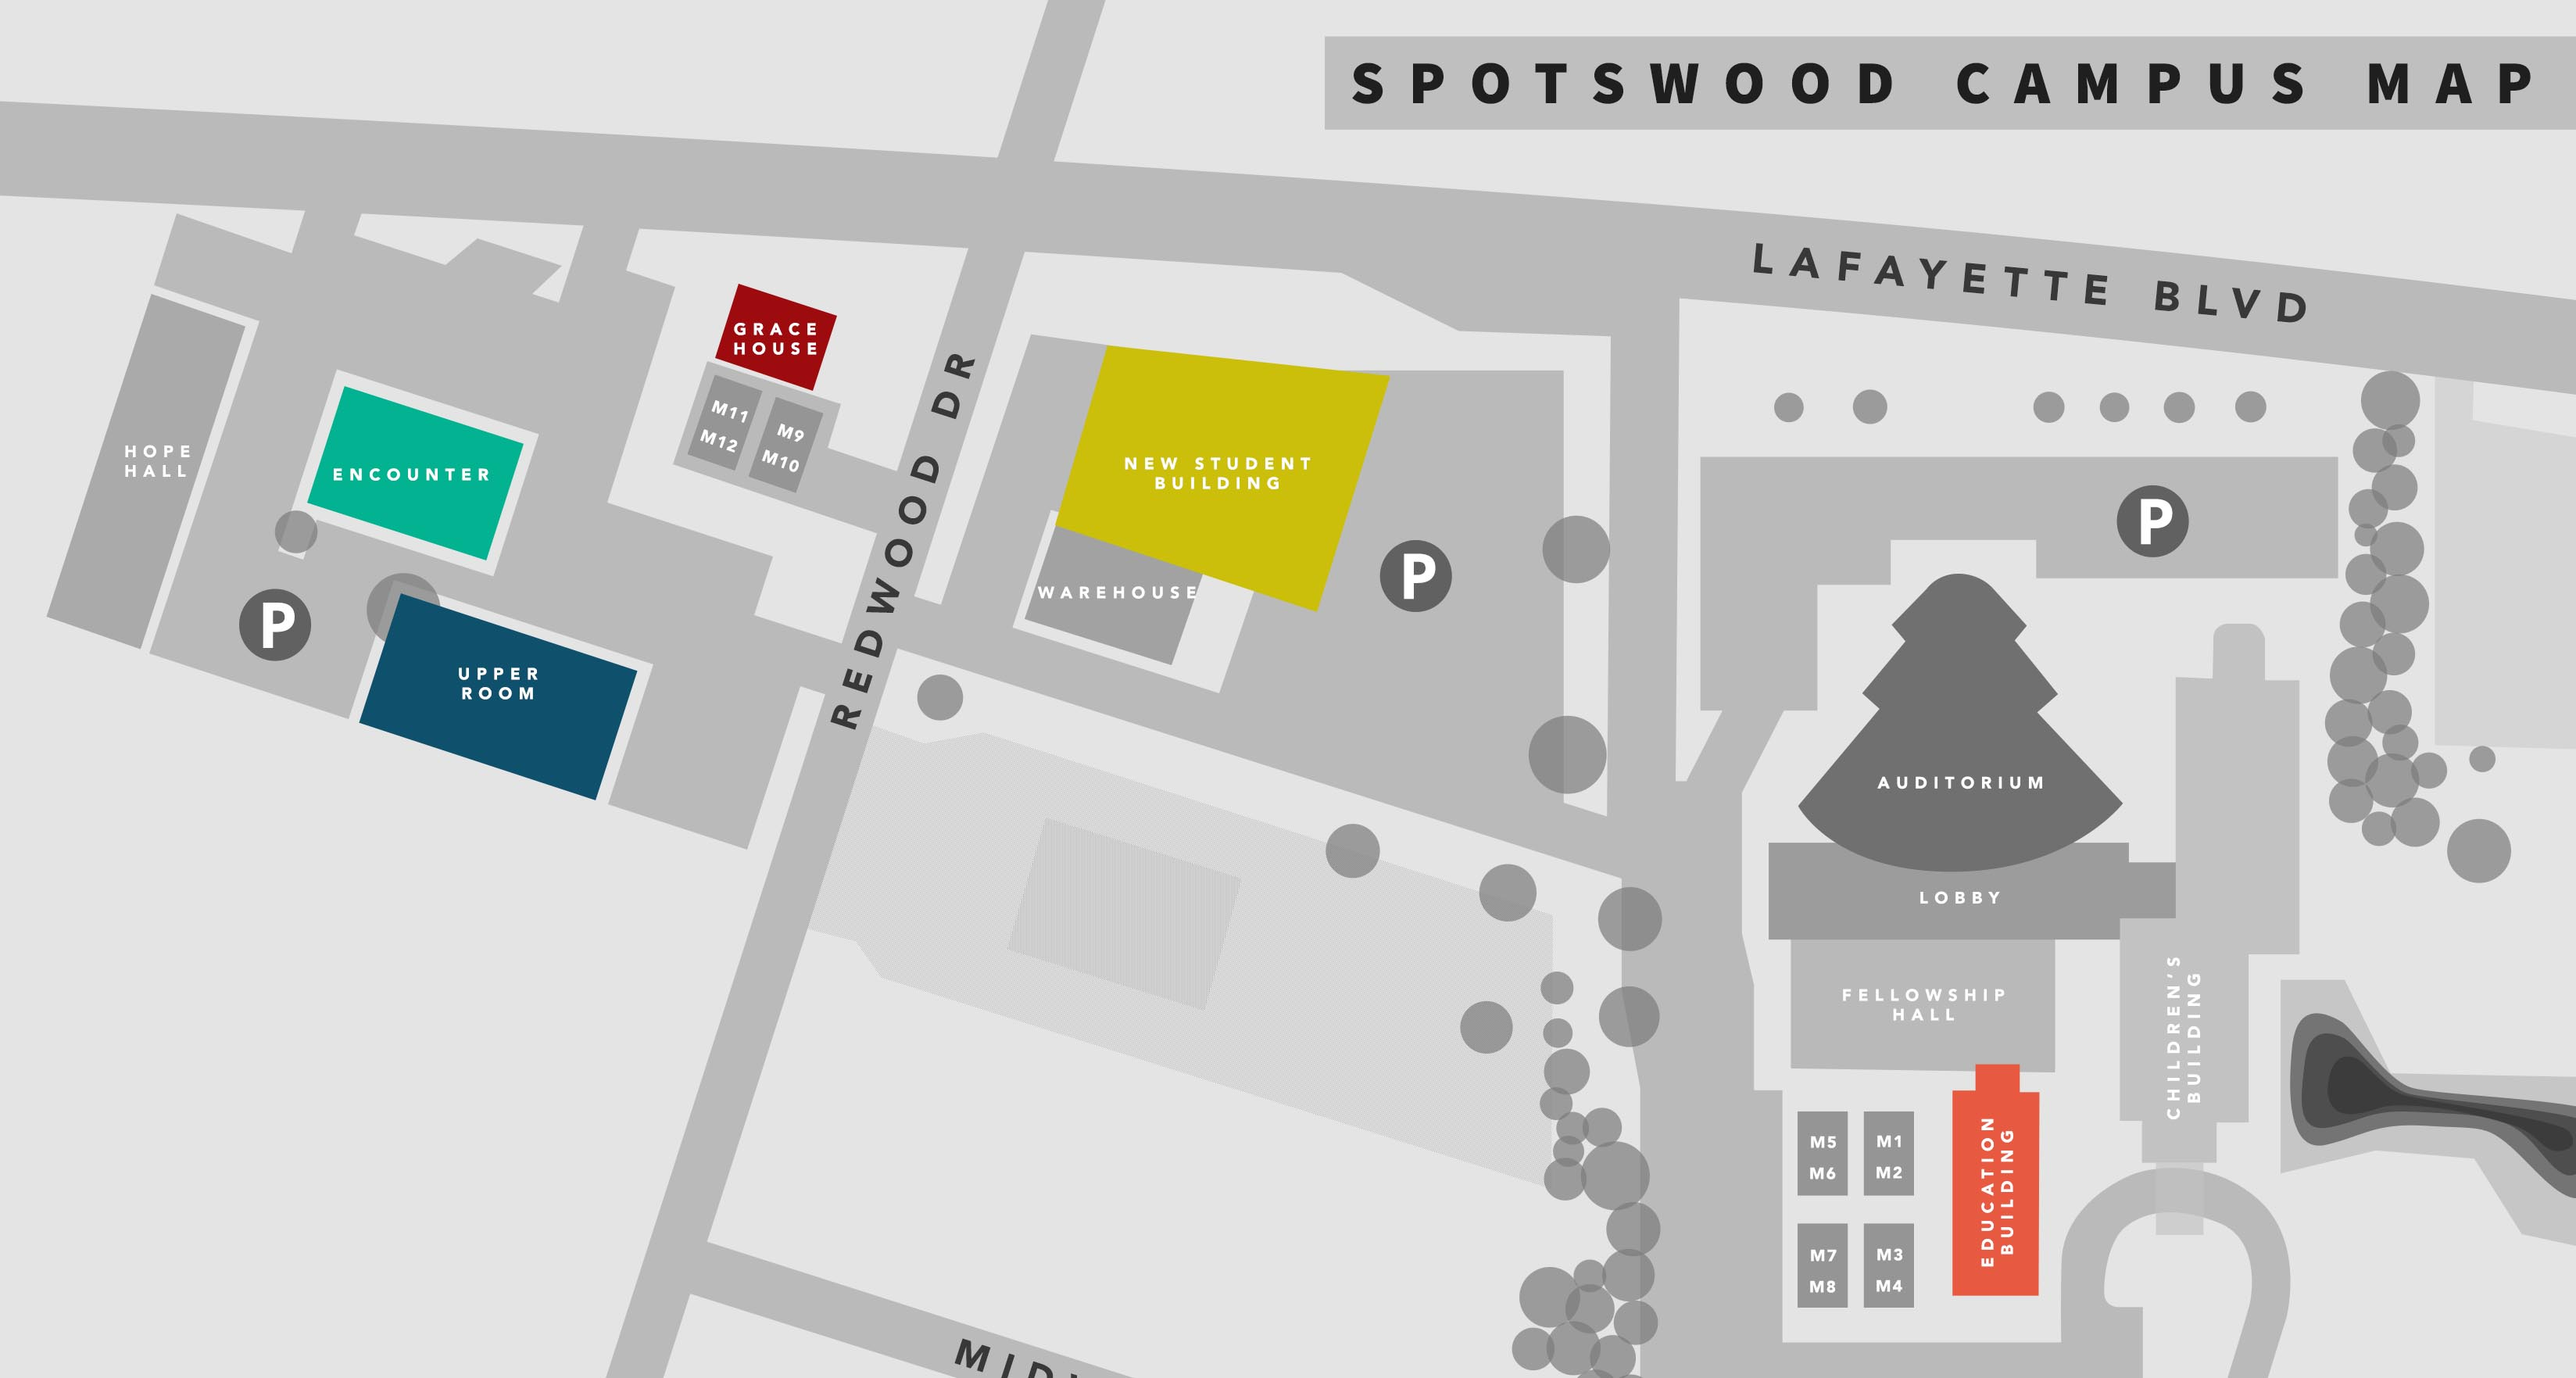 Spotswood Campus Map